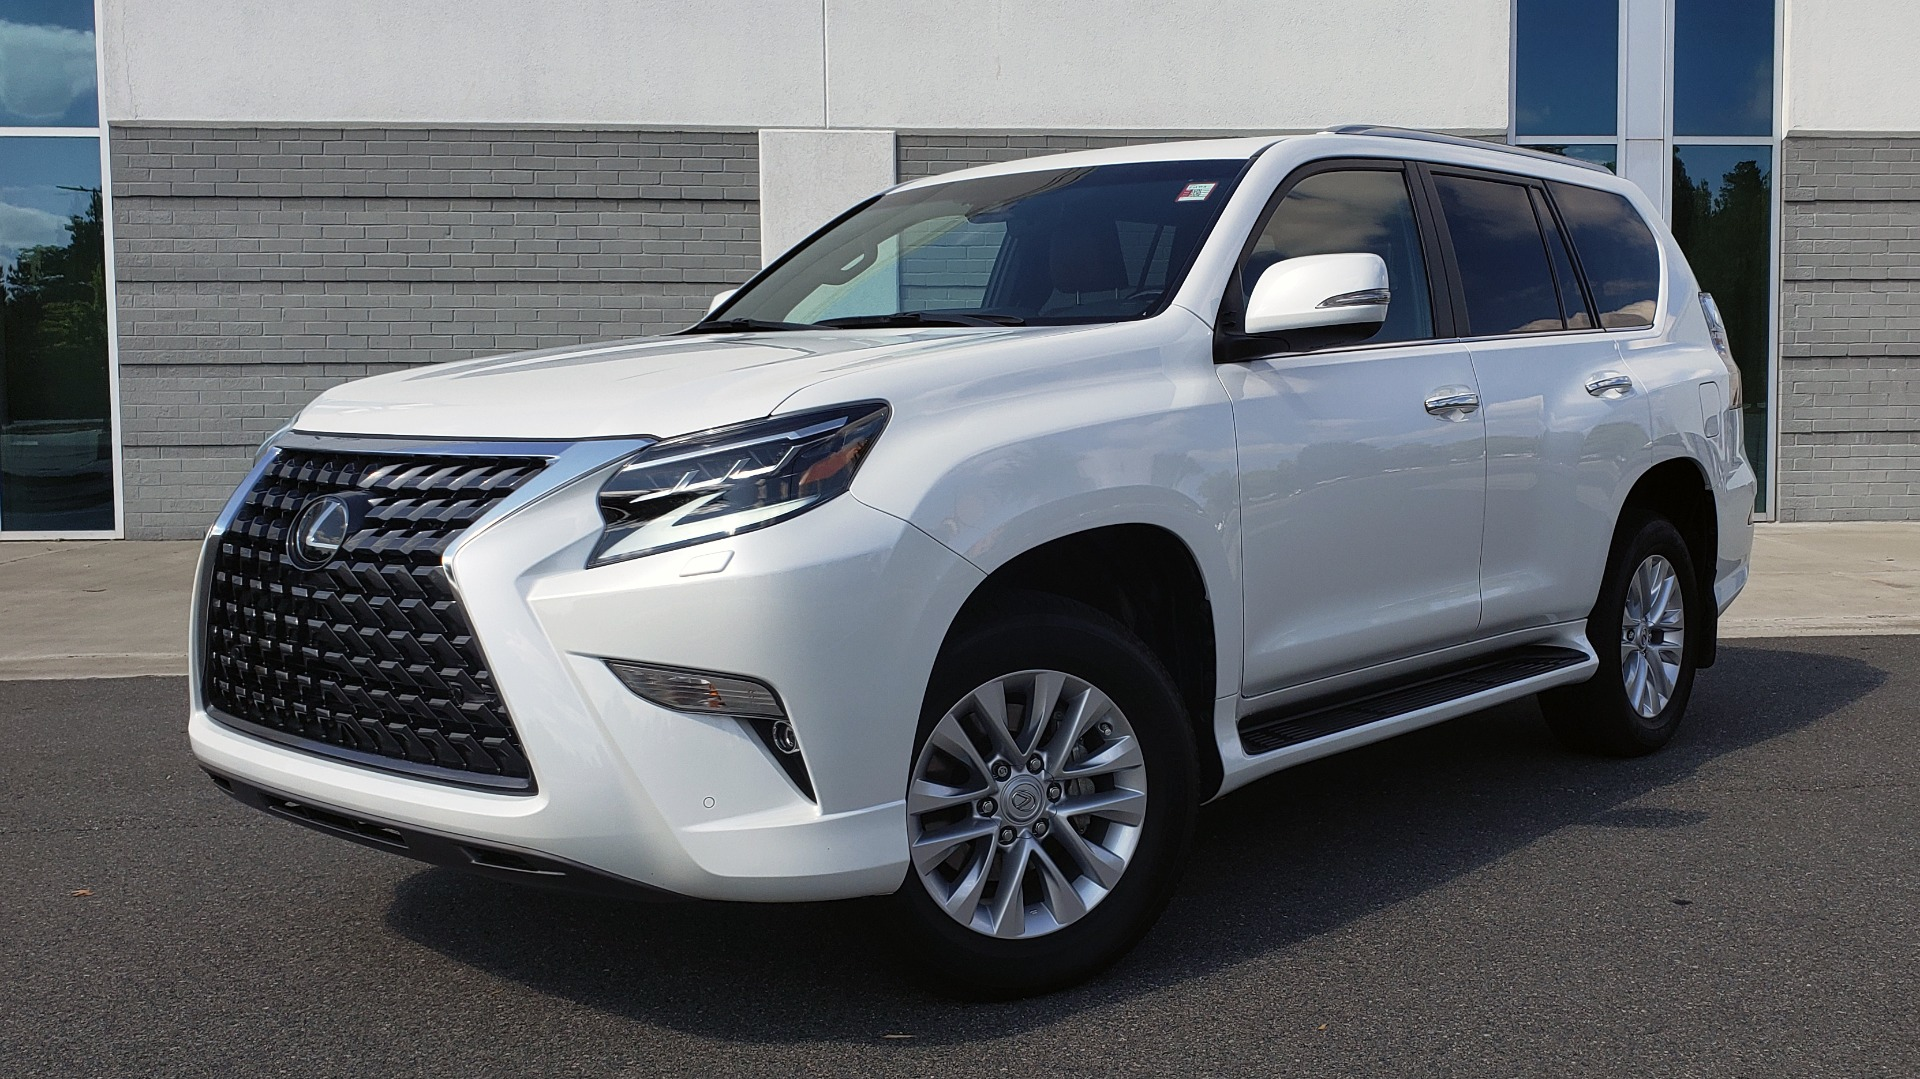 Used 2021 Lexus GX 460 PREMIUM / AWD / NAV / SUNROOF / 3-ROW / REARVIEW for sale Sold at Formula Imports in Charlotte NC 28227 1